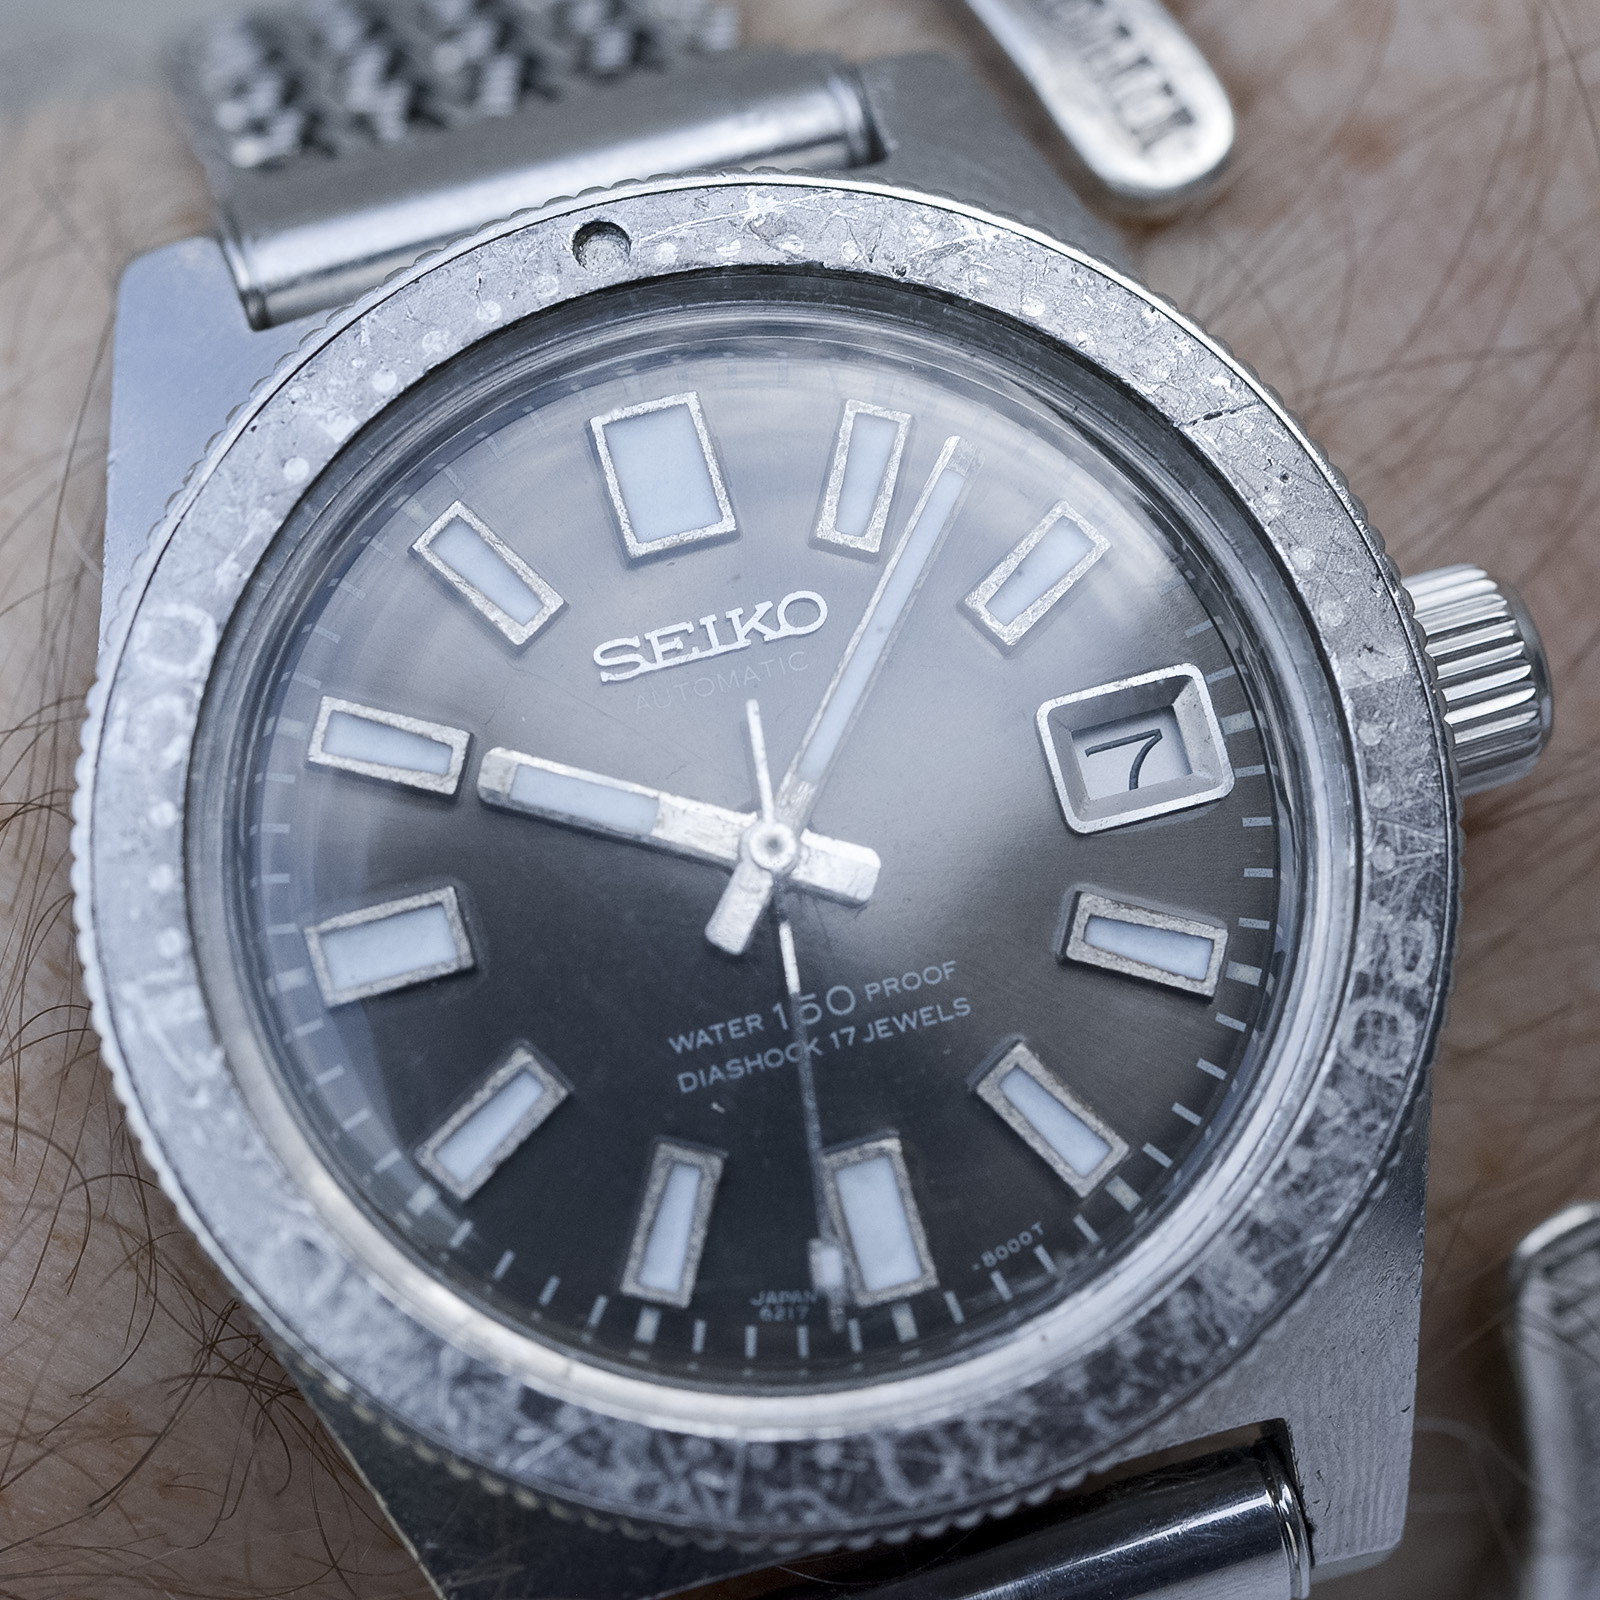 watches achieves freelancer raymond rw rvb lpaul stc iconic weil en status forweb back blog